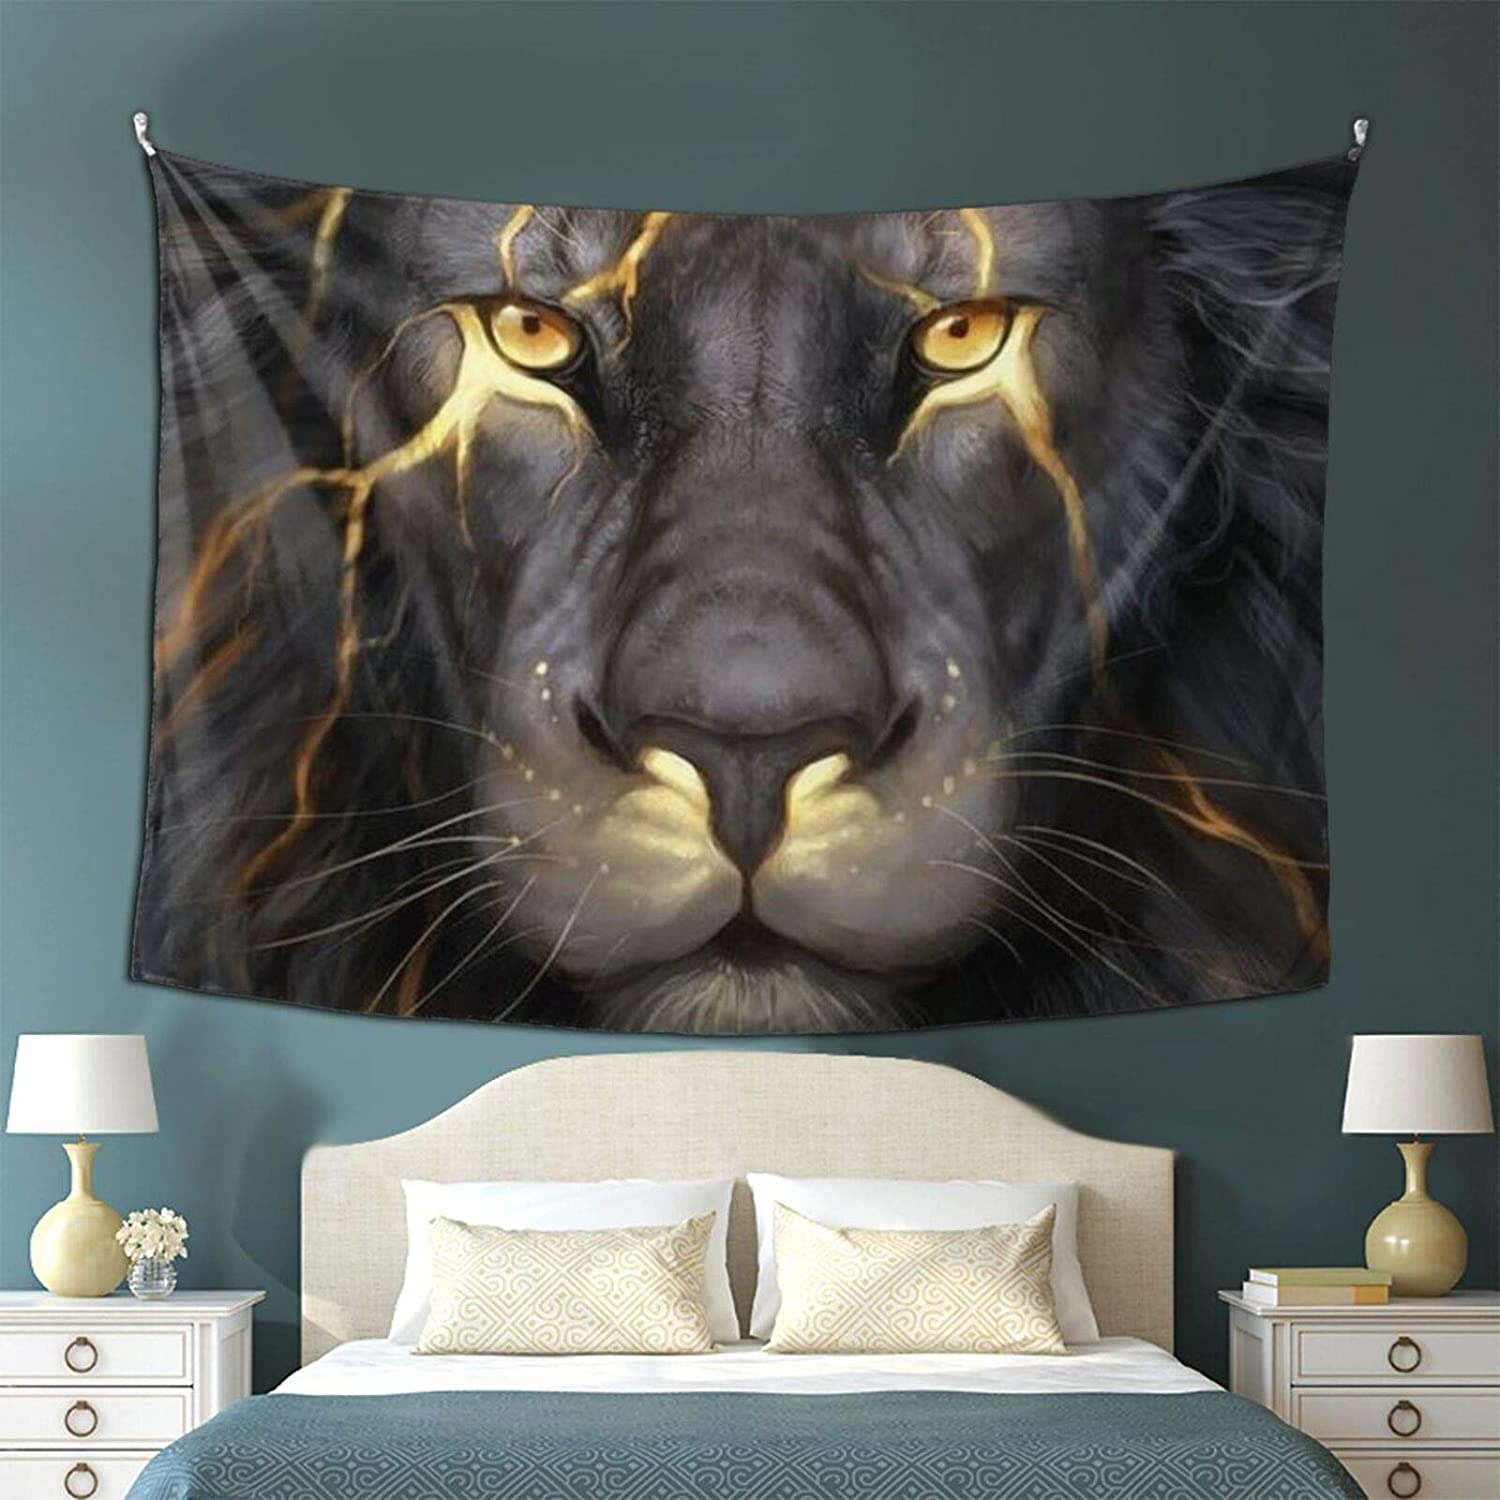 QSMX Tapestry, Bohemian Style Golden Cool Lion King Paninting Wall Hanging Tapestries Curtain, Indian Art Print Mural Tablecloth for Bedroom Living Room Dorm Home D¨¦cor 50x60 Inches